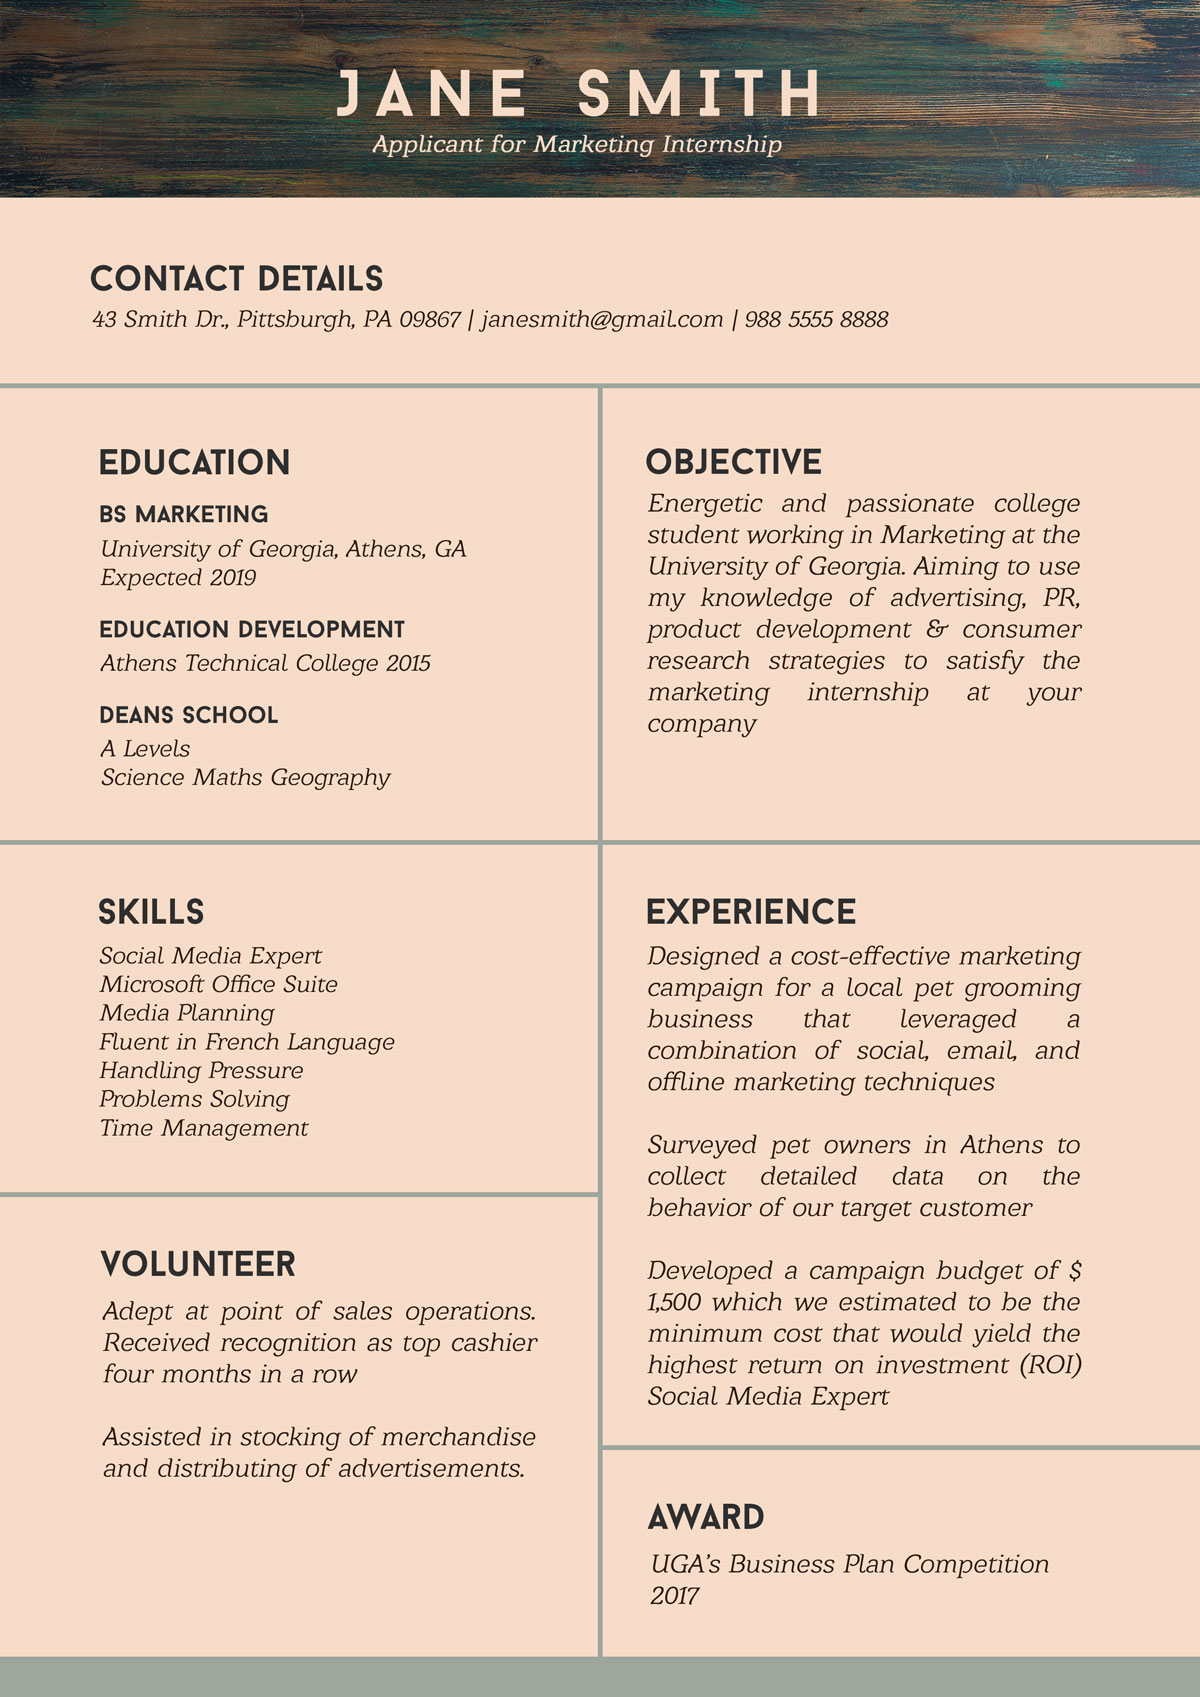 Free Resume Template For Internship Student With No Experience Designbolts